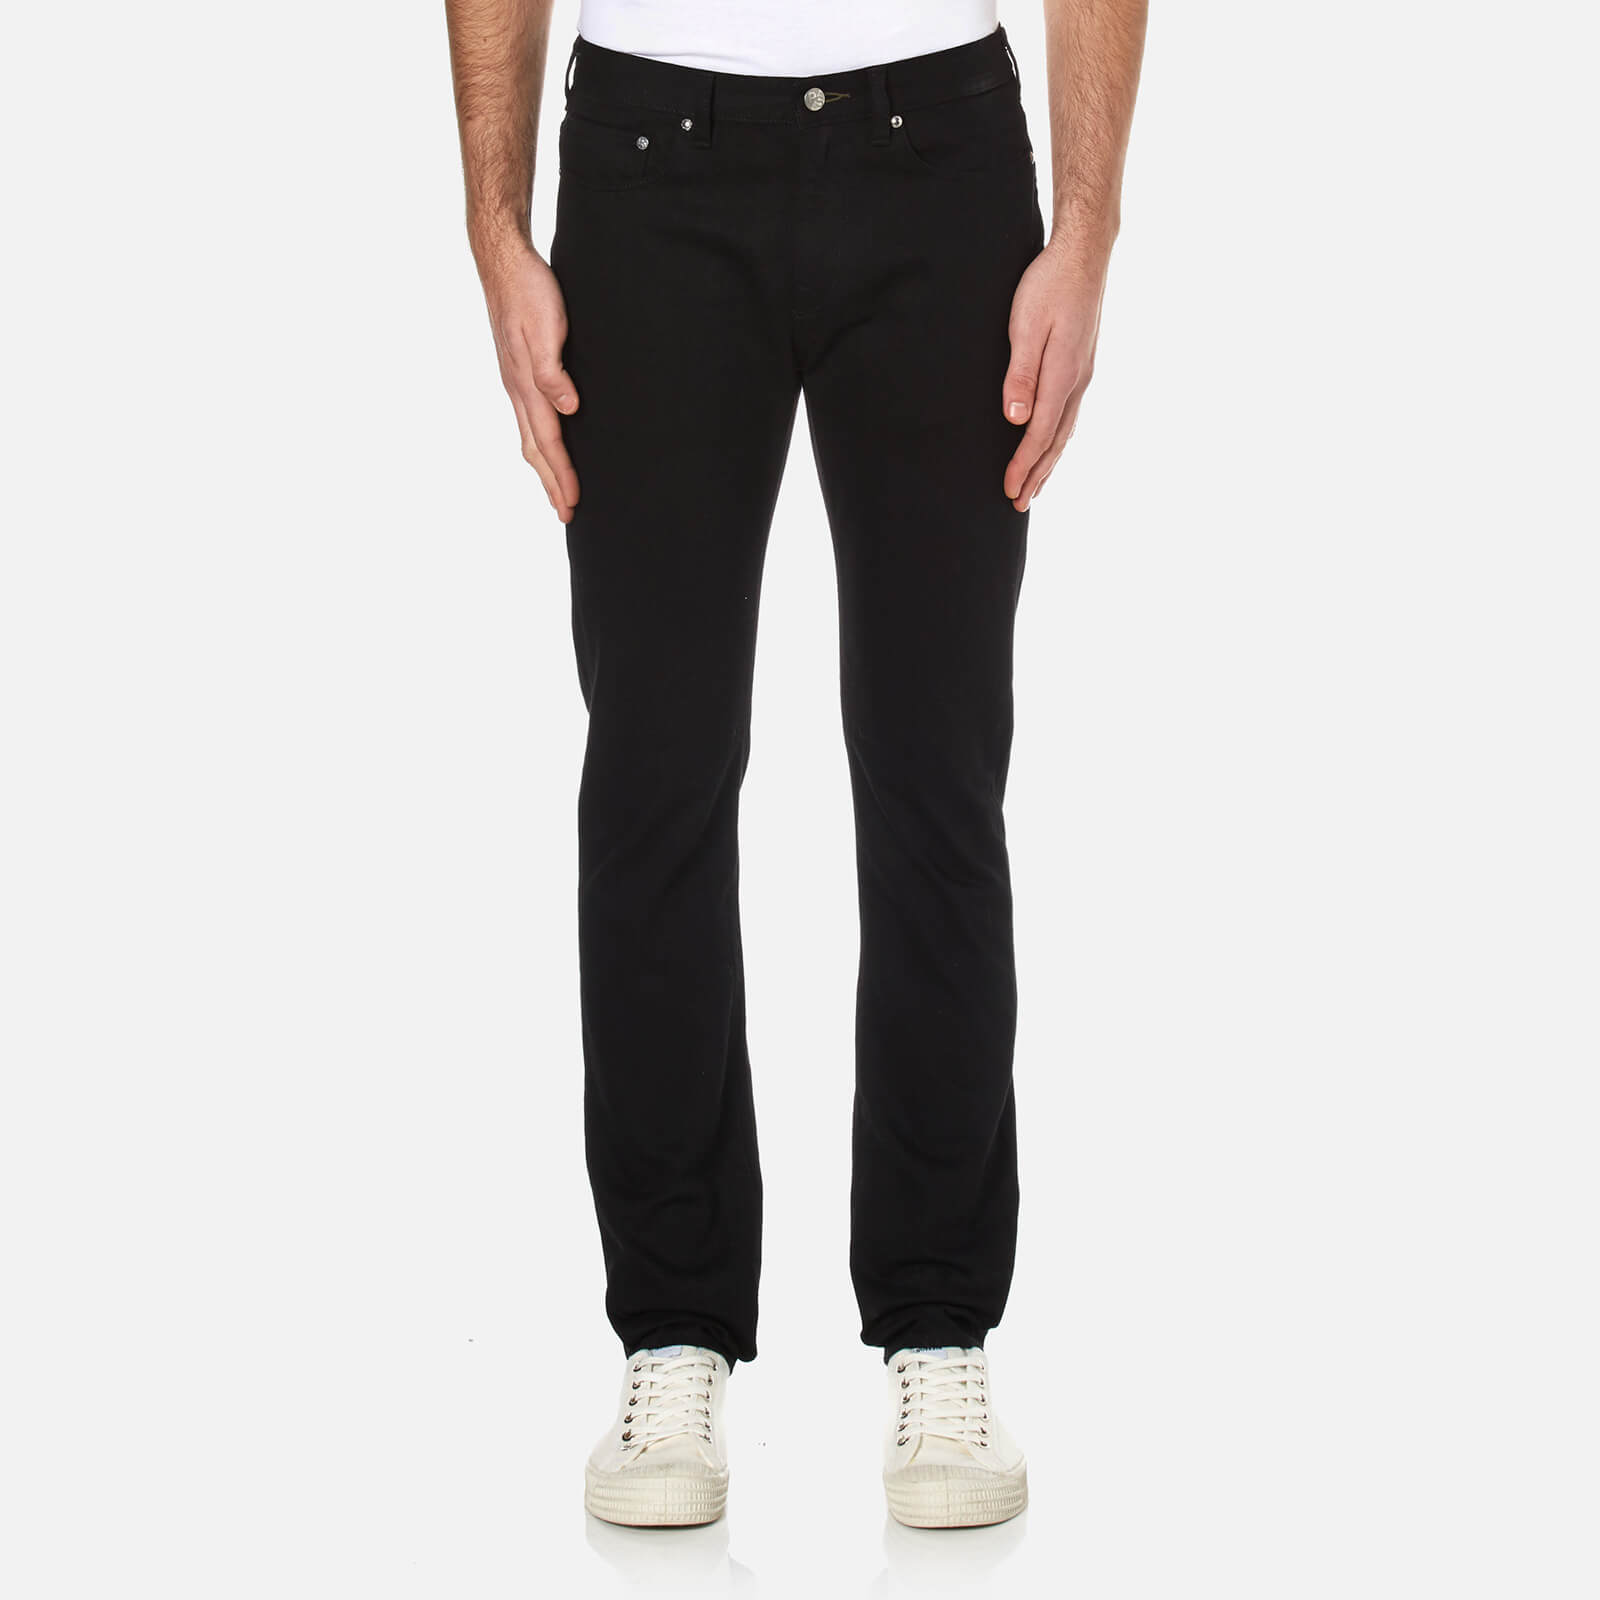 d03dfd77 PS Paul Smith Men's Slim Fit Jeans - Black - Free UK Delivery over £50